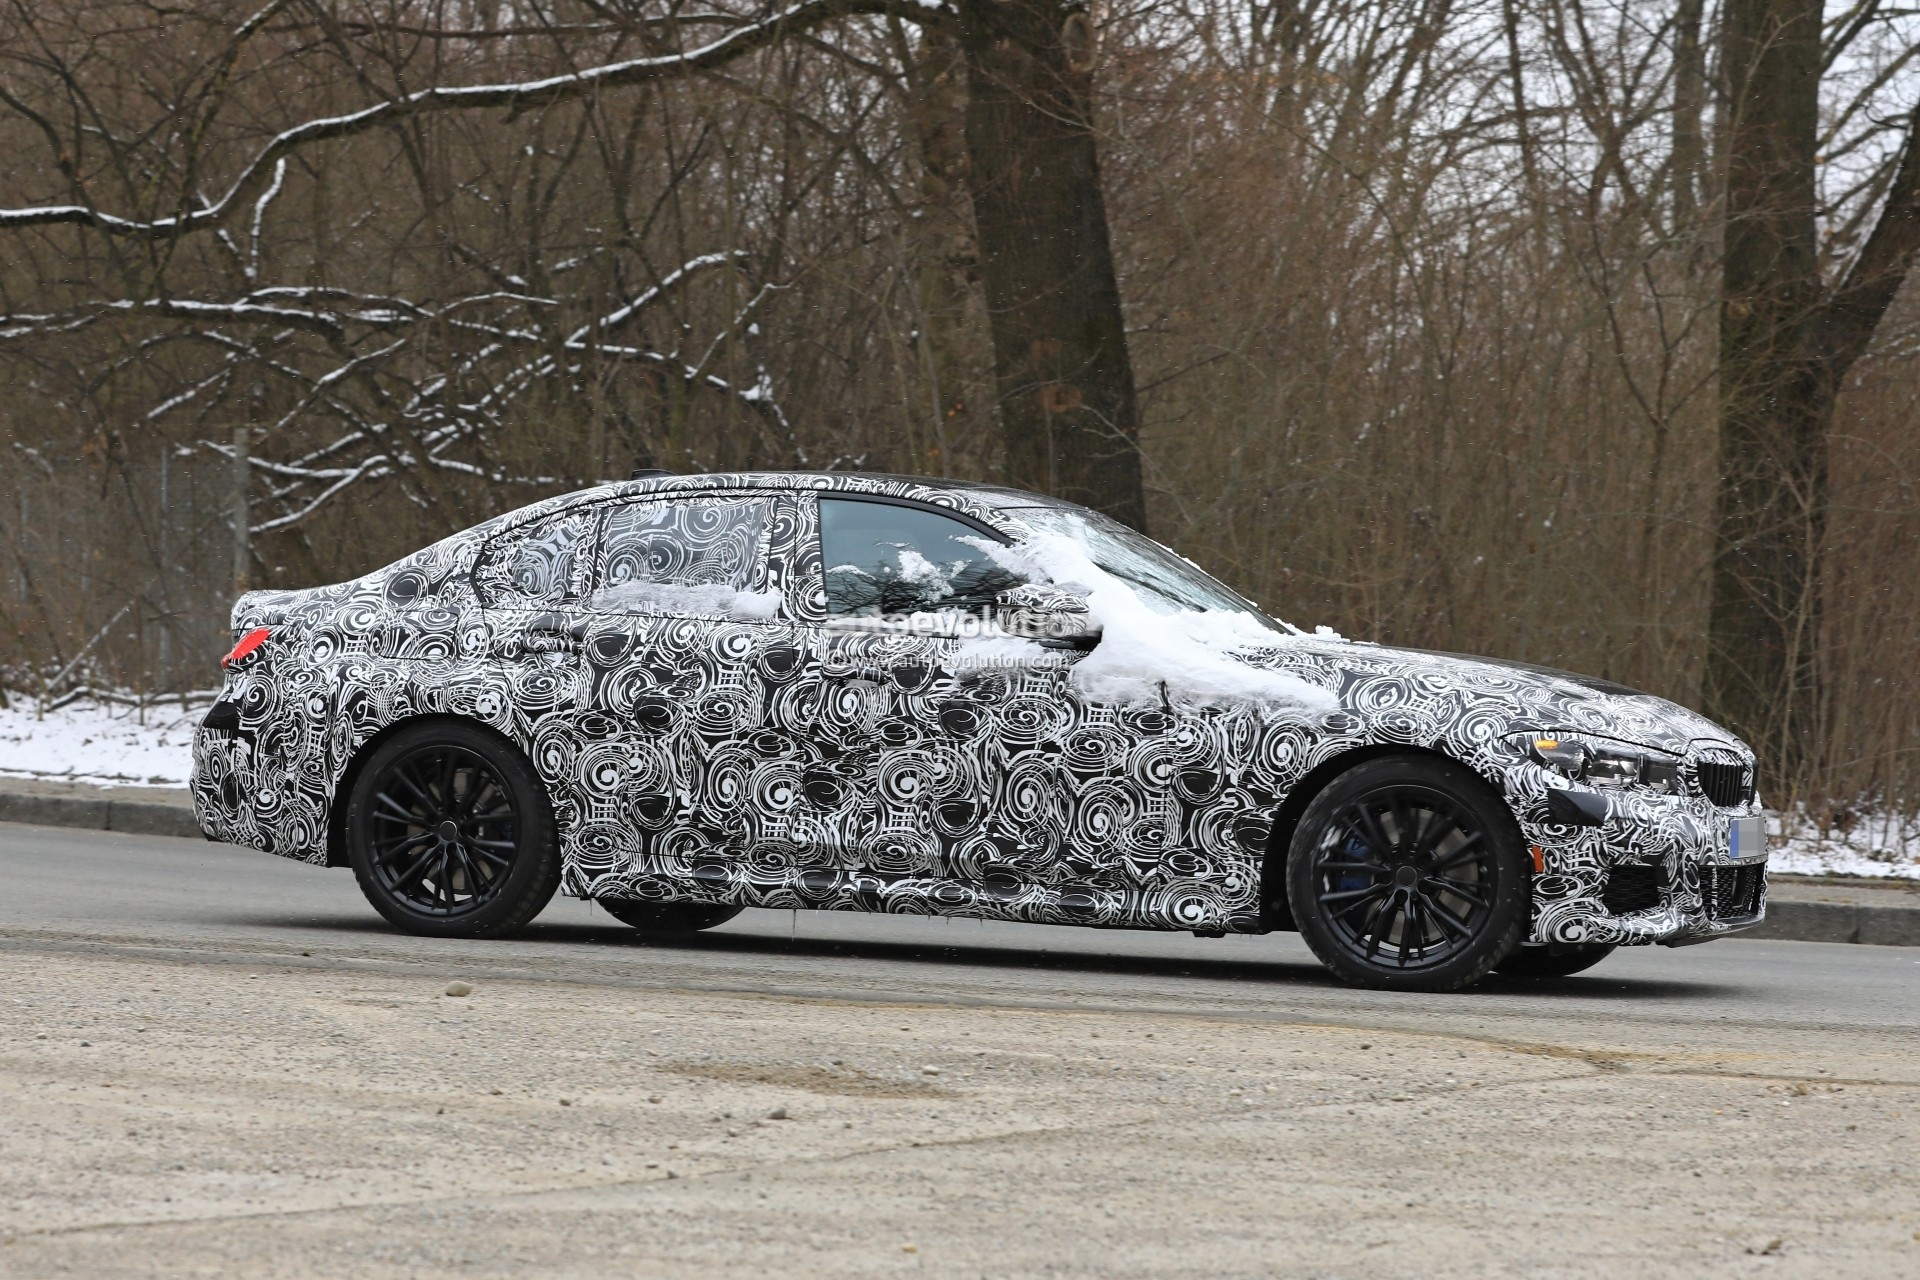 Bmw G20 Touring >> Spyshots: 2019 BMW 3 Series Shows Baby 5 Series Look with Sportier Details - autoevolution